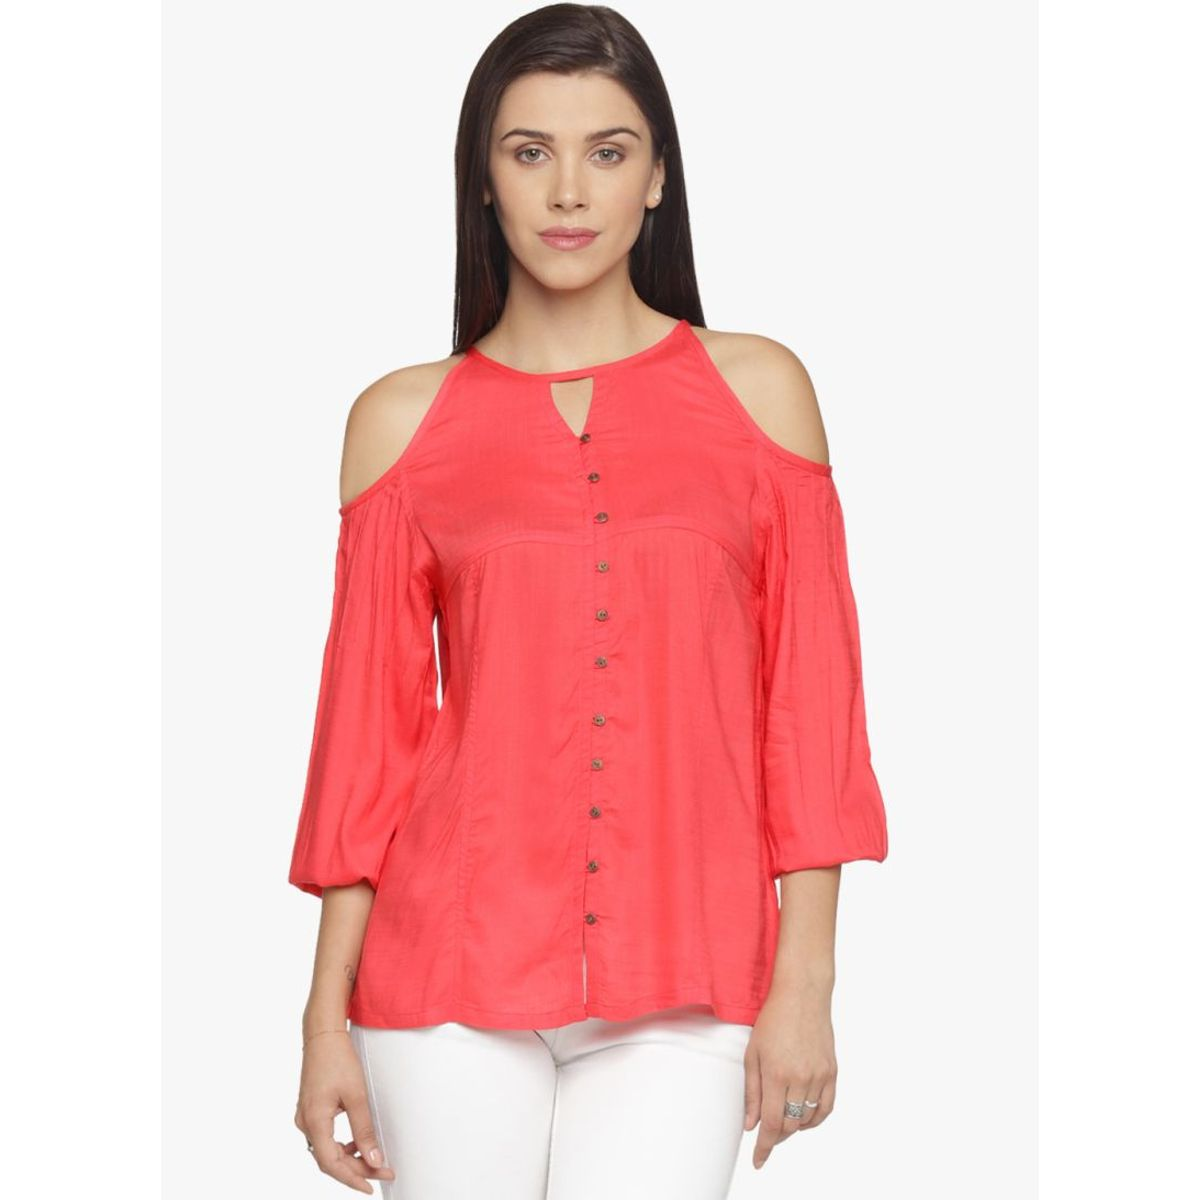 DECLAN COLD SHOULDER TOP